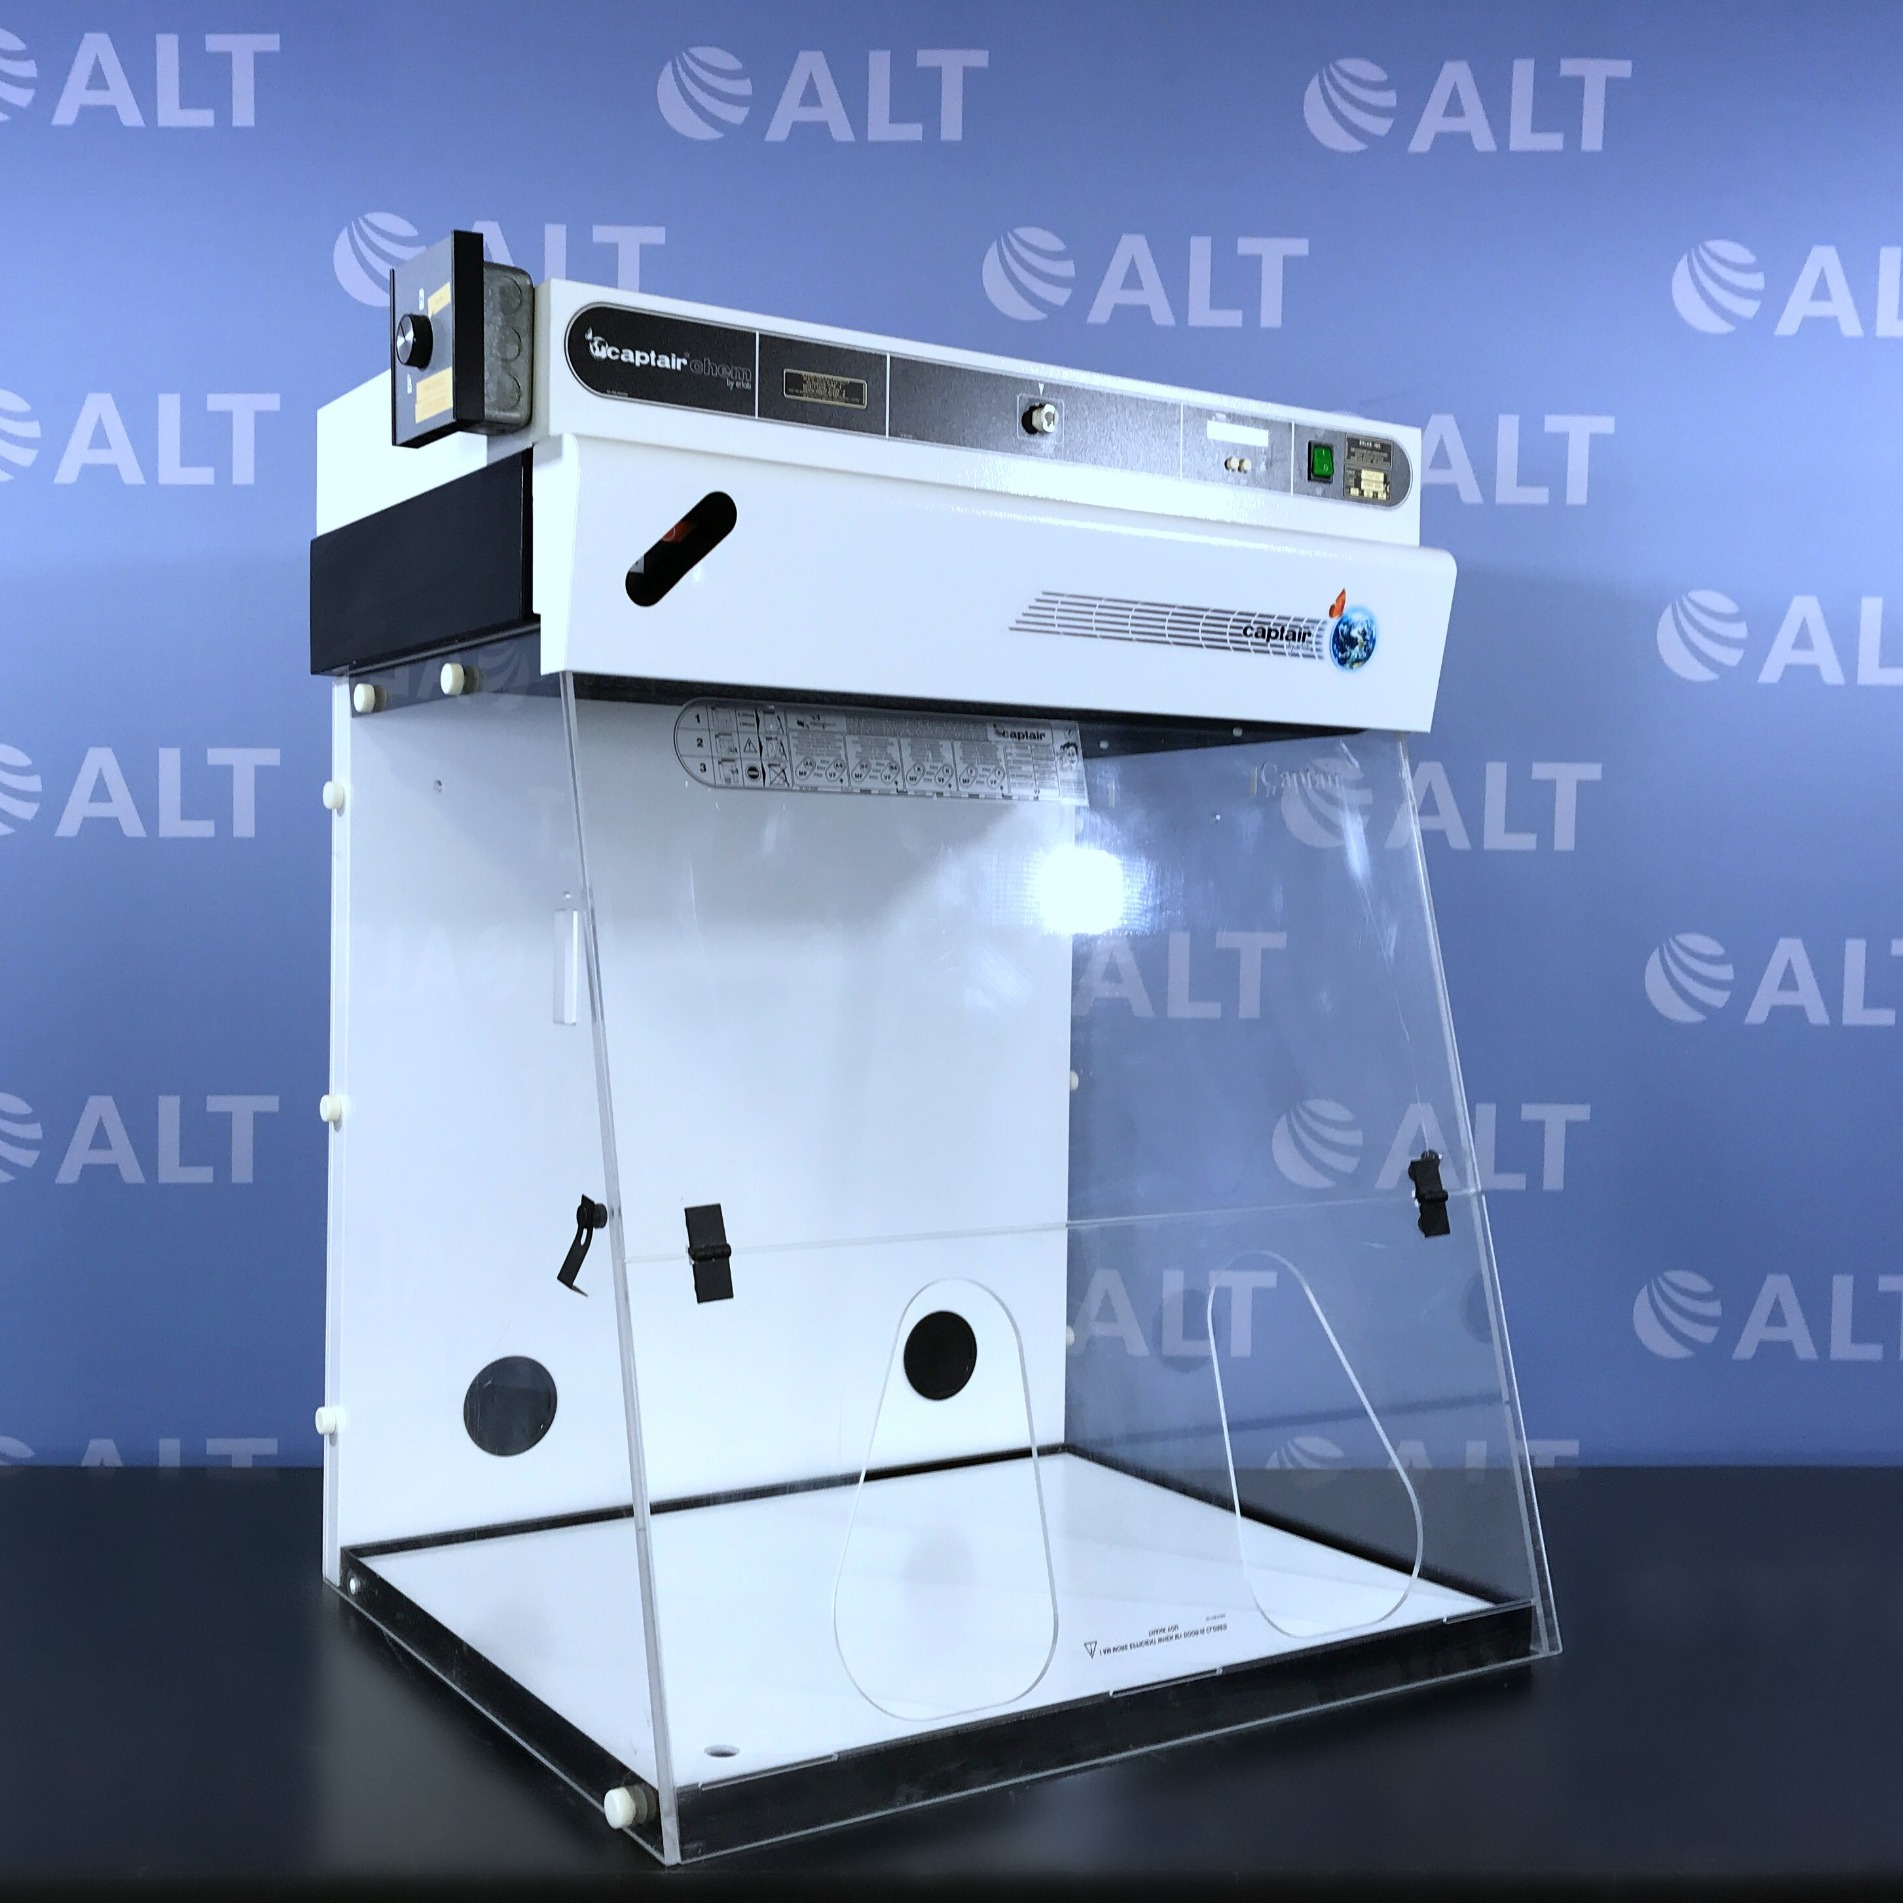 Erlab Captair  Chem Filtair 824 Bench Top Chemical Fume Cabinet Image